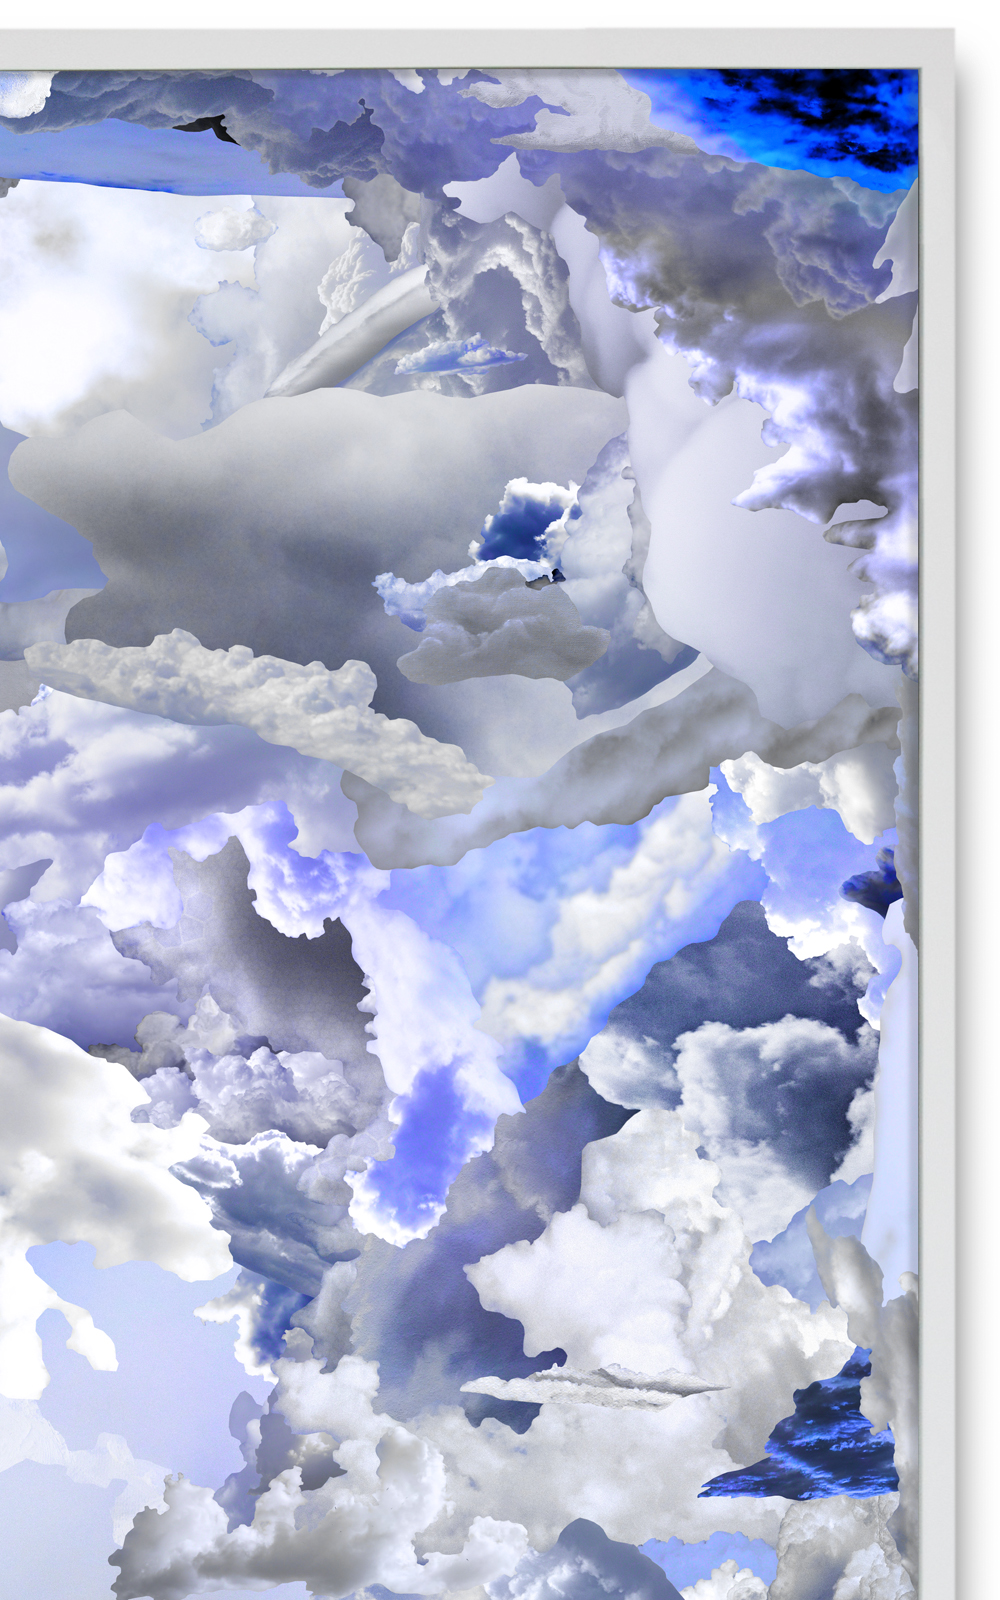 Case Simmons, Simmons & Burke, Blue Clouds B, Cloud Collage, Pigment Print, Digital Collage,Digital Art, Photoshop Collage, Contemporary Collage,Case Simmons Art, Collage Fine Art, Epson Metallic Print, Abstract Digital Collage,Kohn Gallery